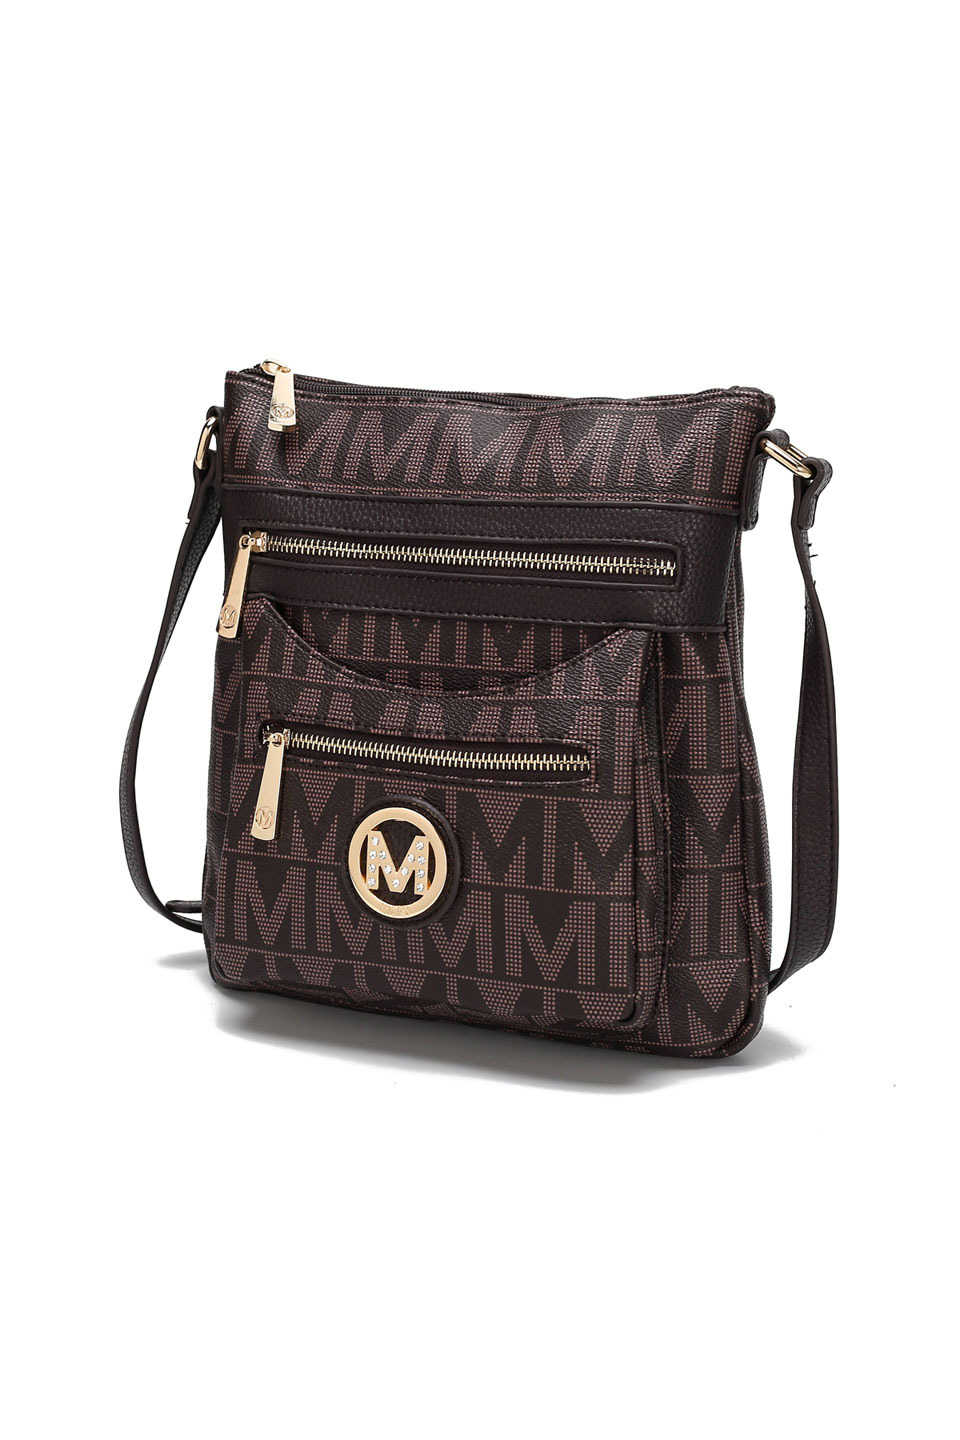 Saniya M Signature Crossbody Bag in Chocolate